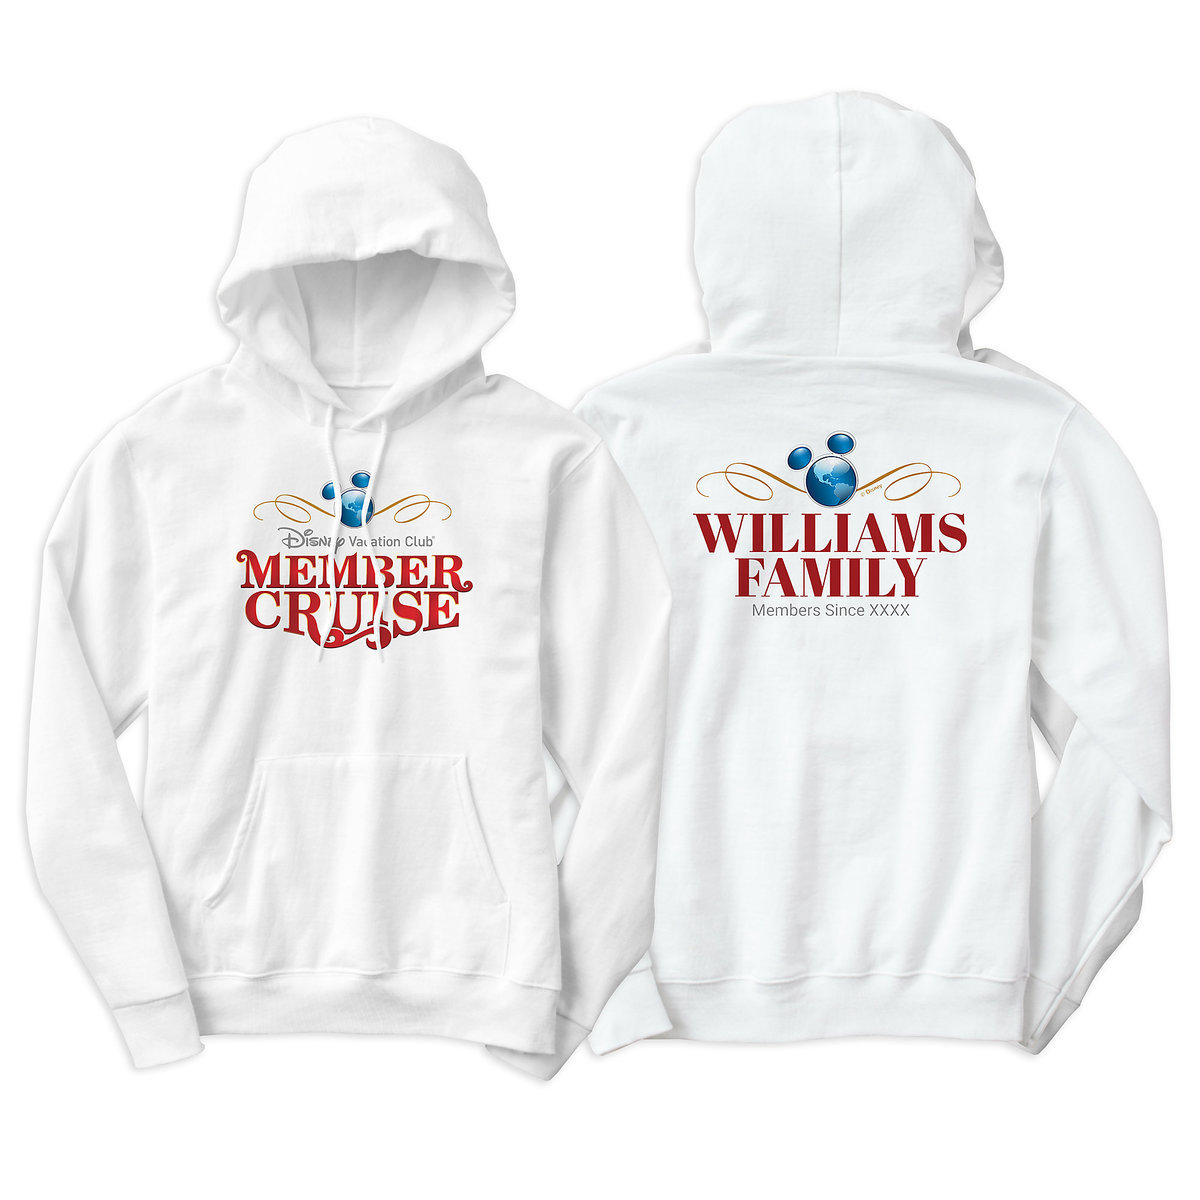 dfb1a1d98 Product Image of Disney Vacation Club Member Cruise Two-Sided Pullover  Hoodie for Men -